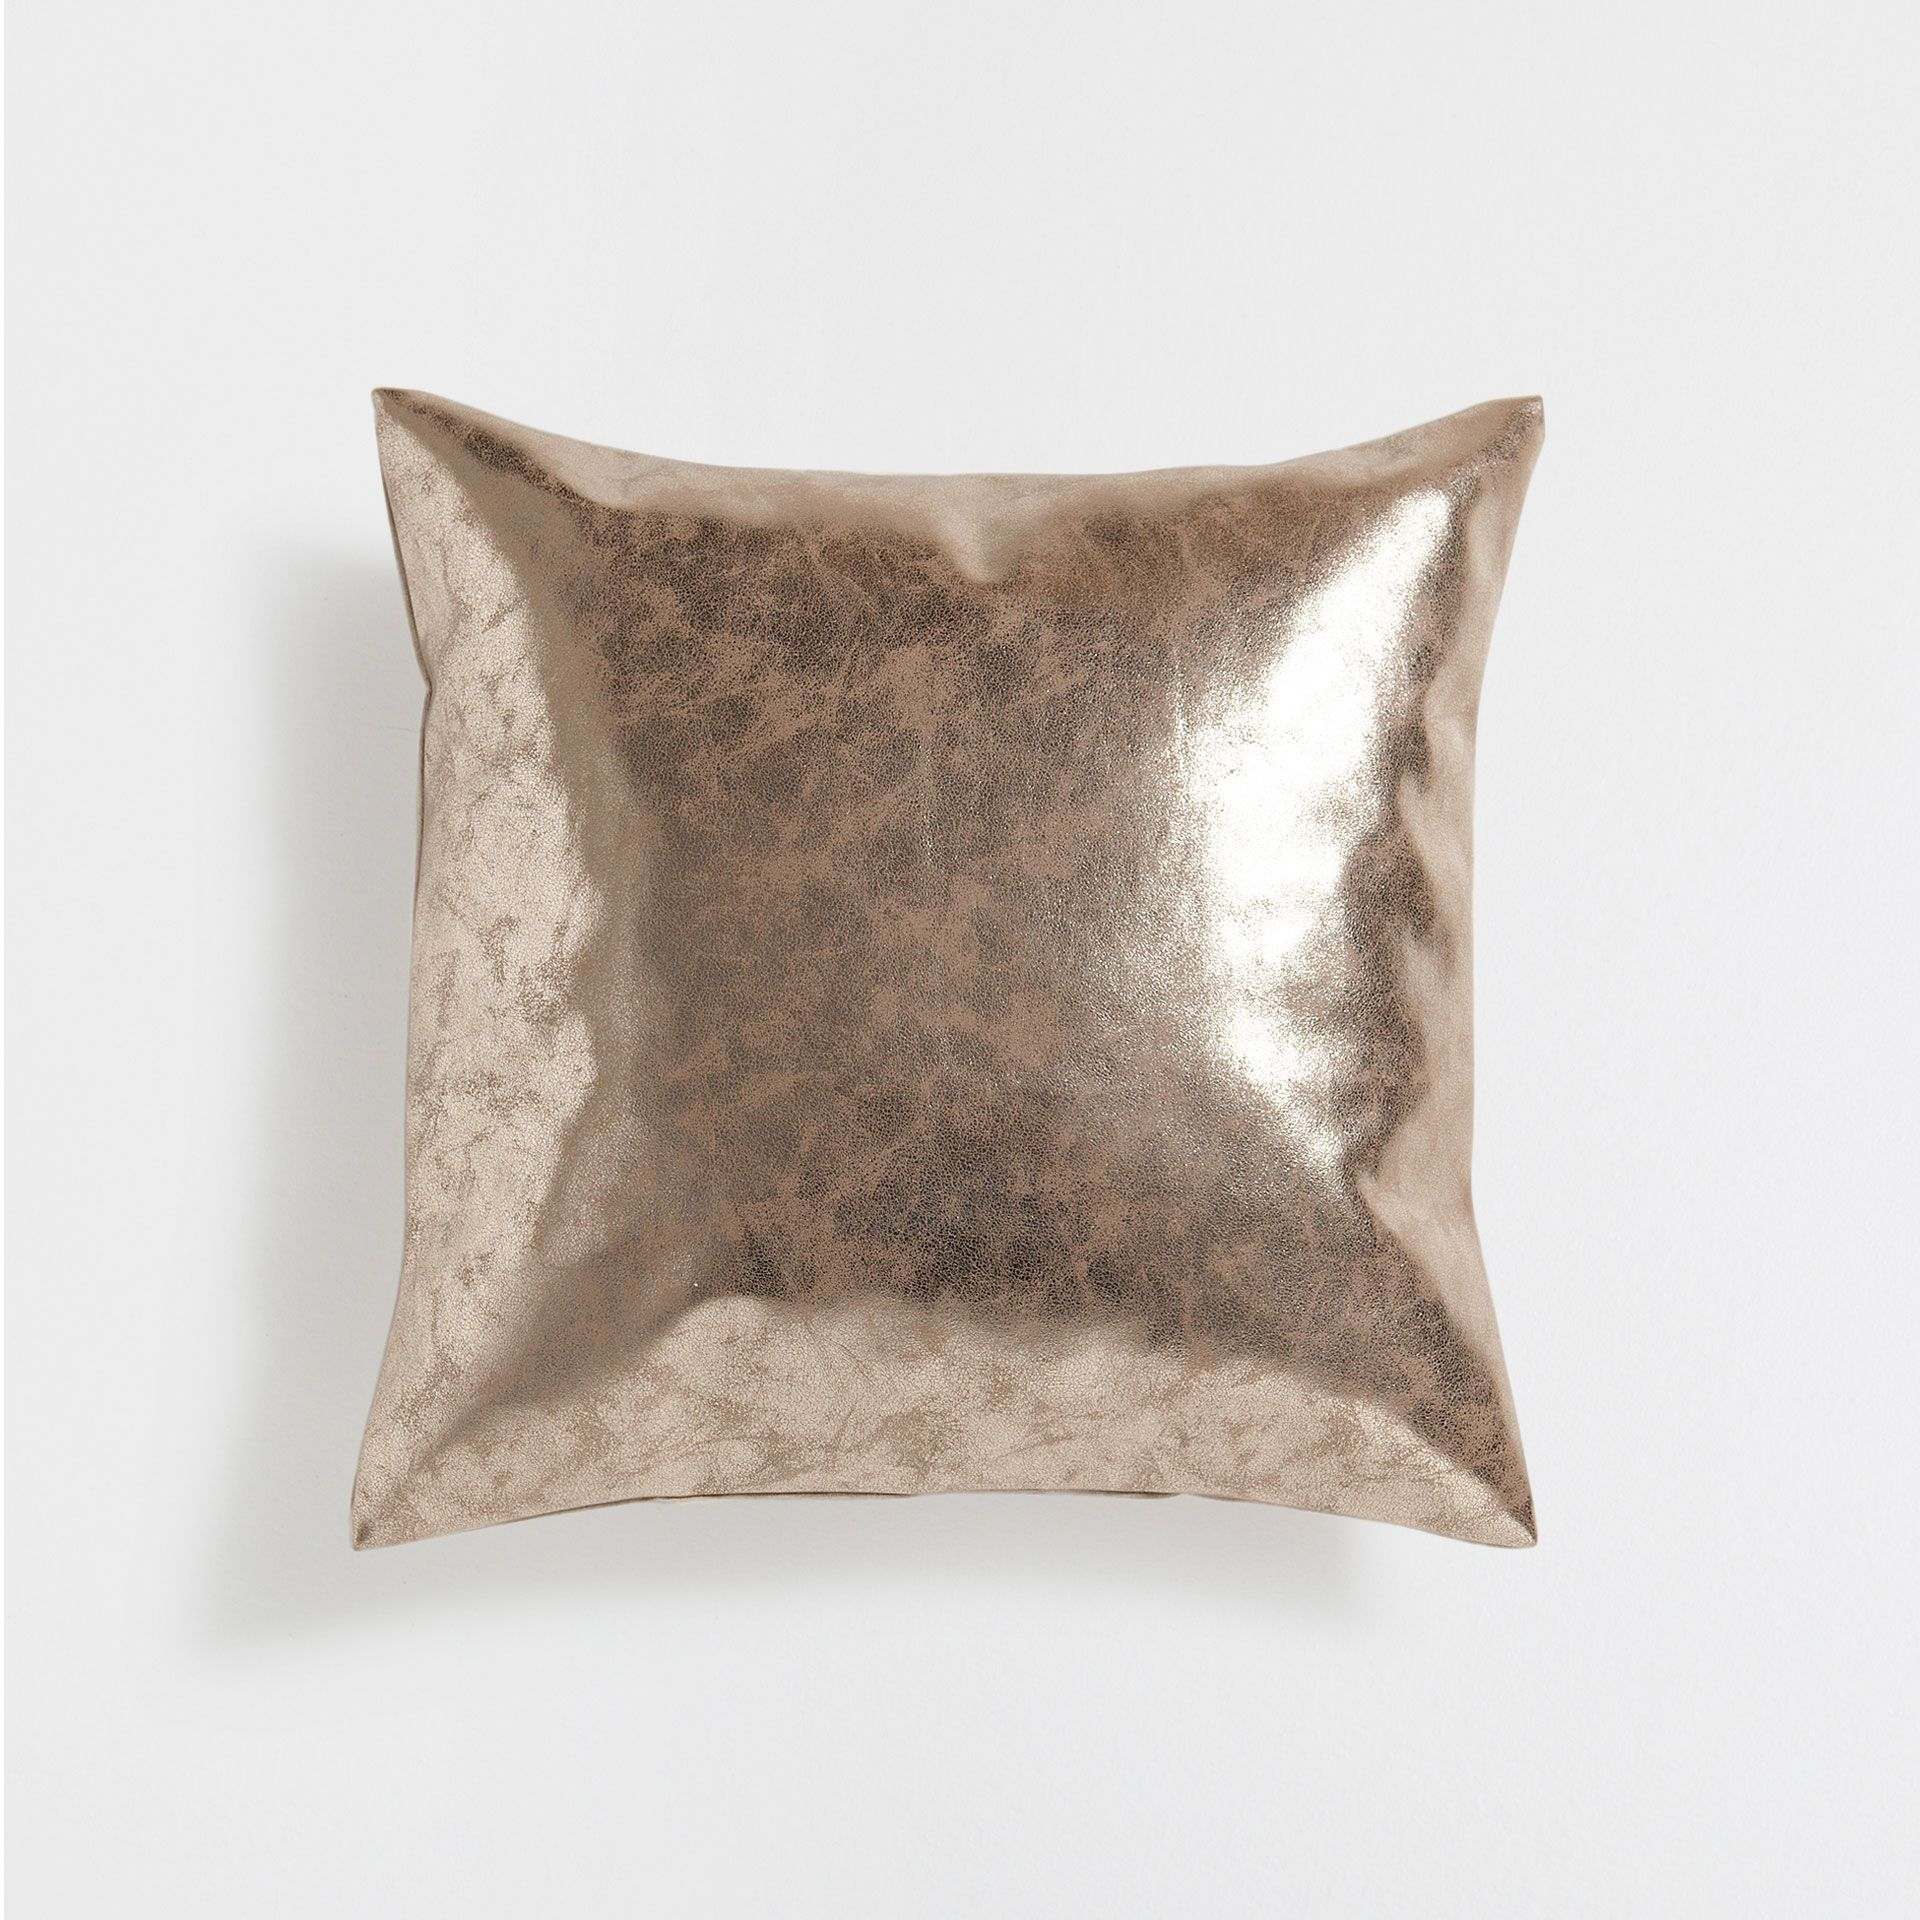 GOLD EFFECT CUSHION COVER